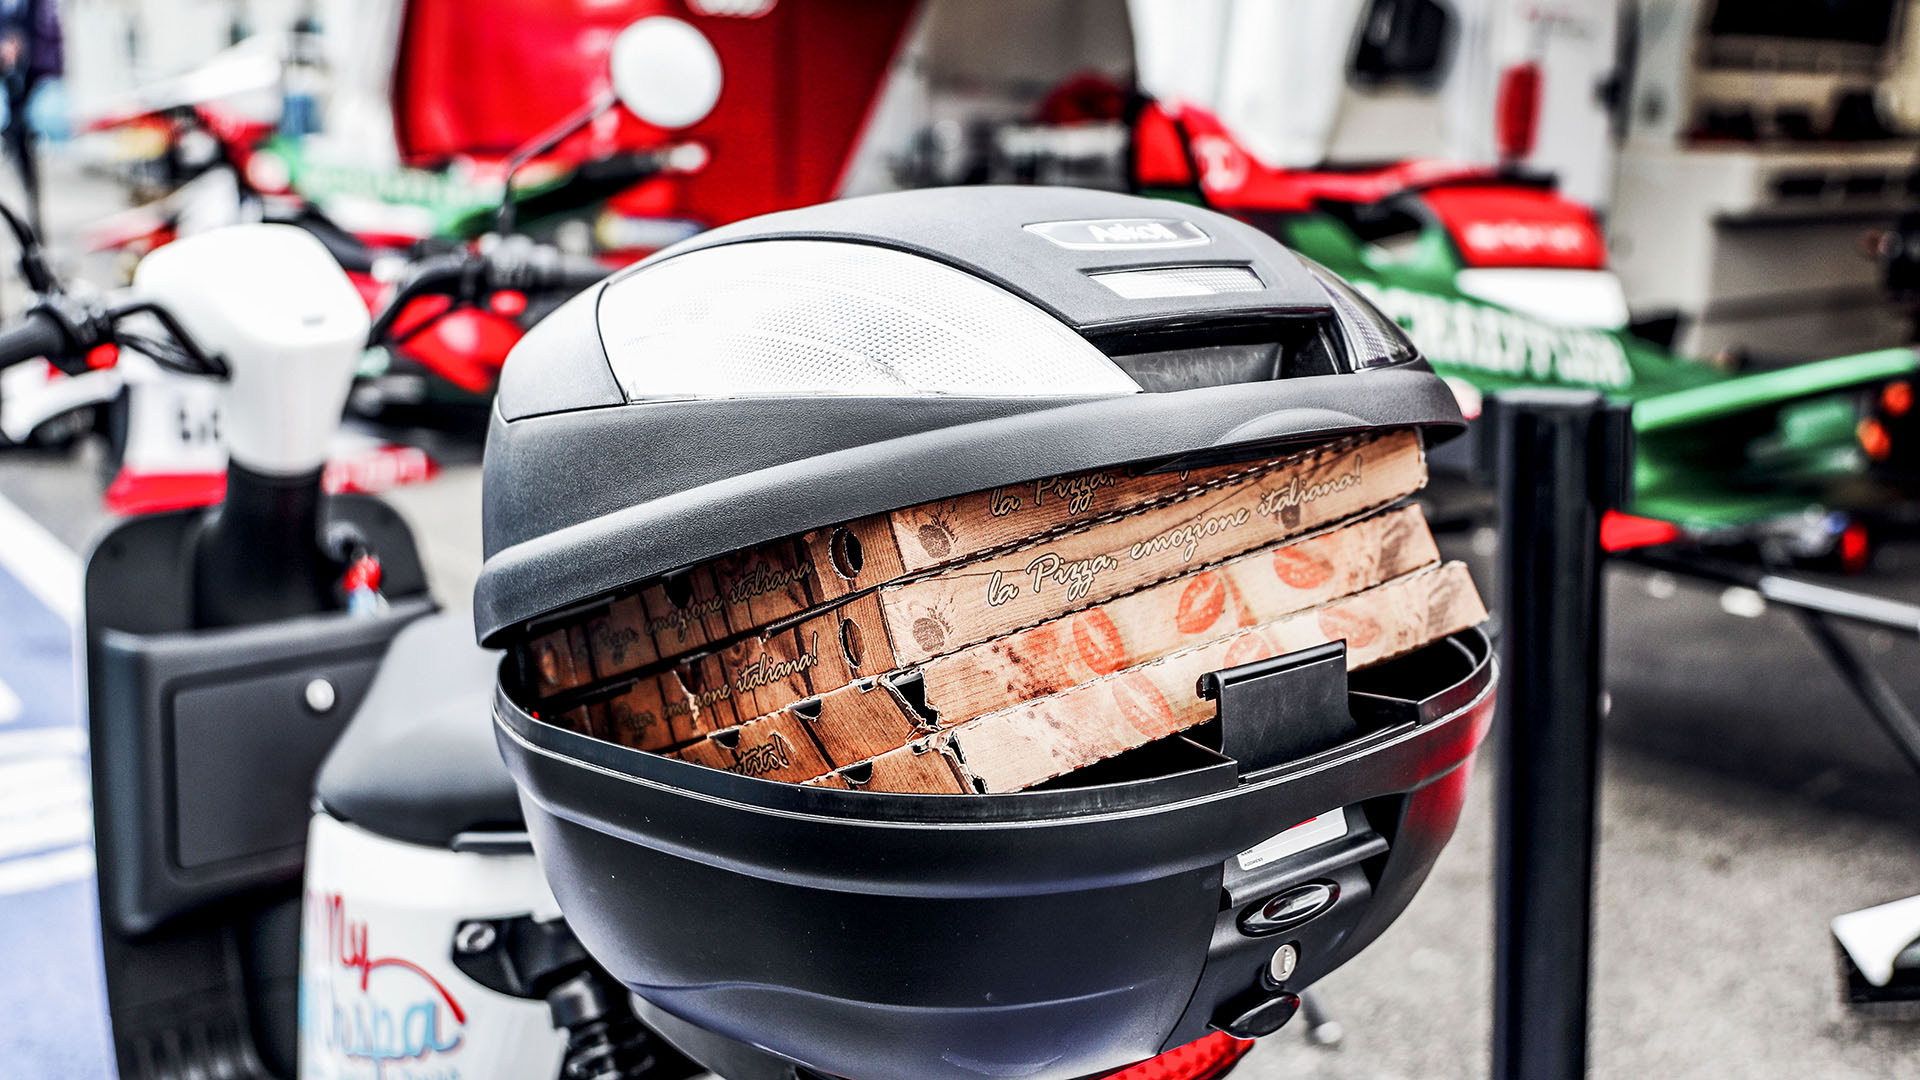 Pizza boxes and a motorcycle